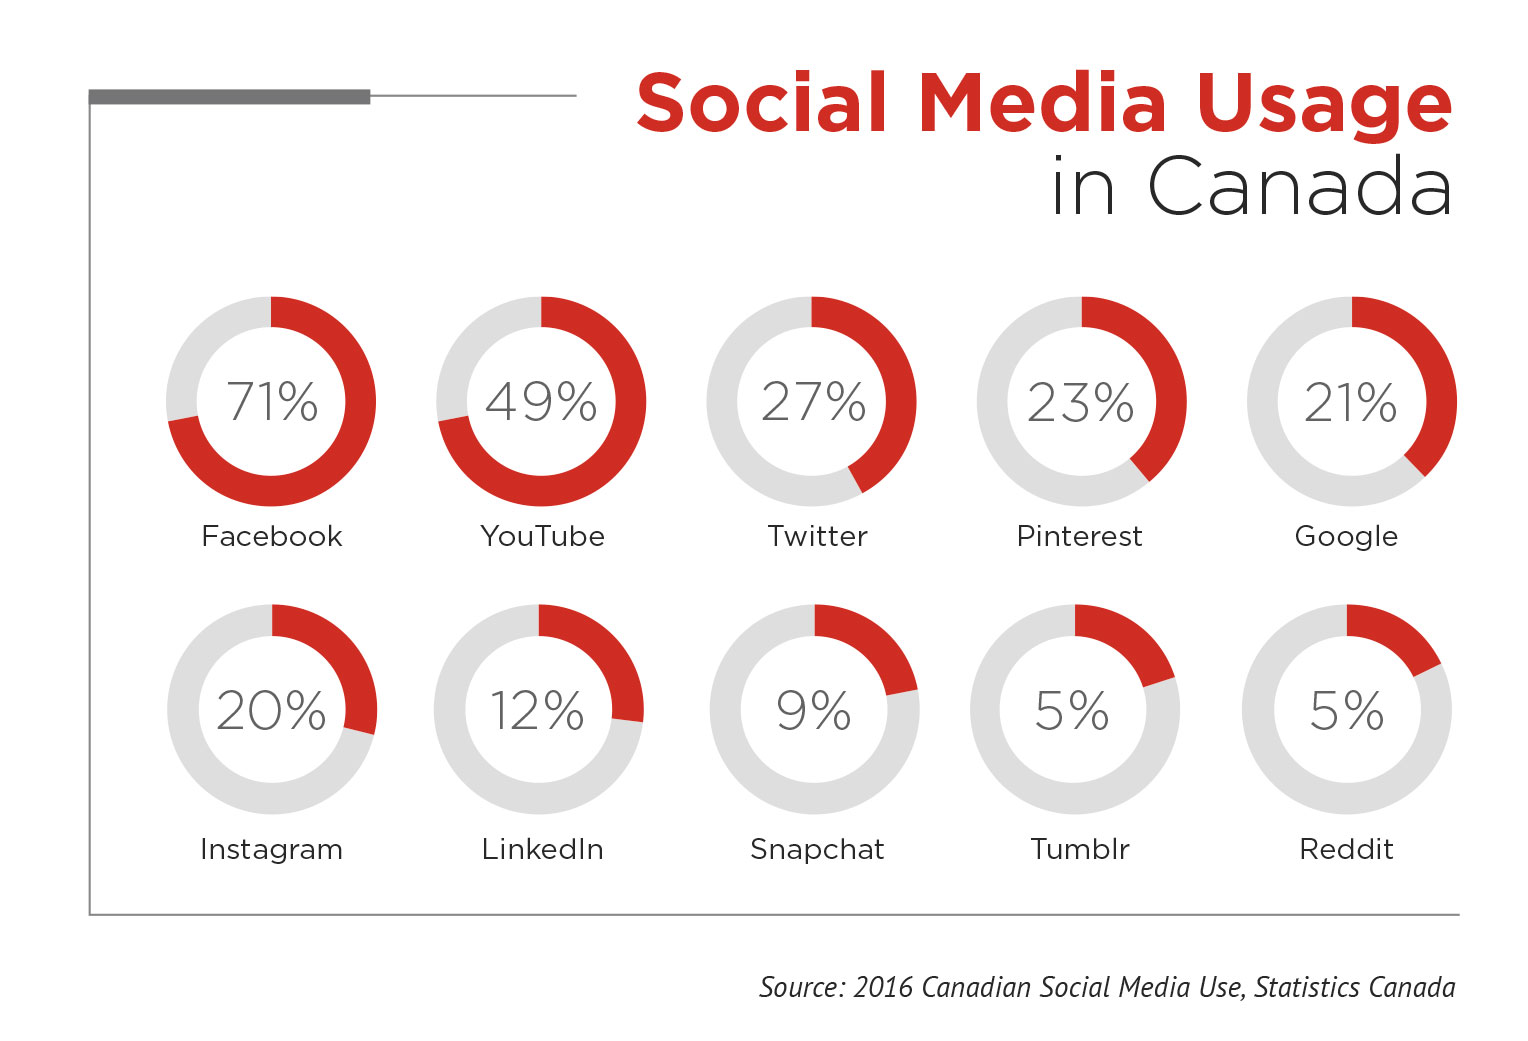 Social media use by channel